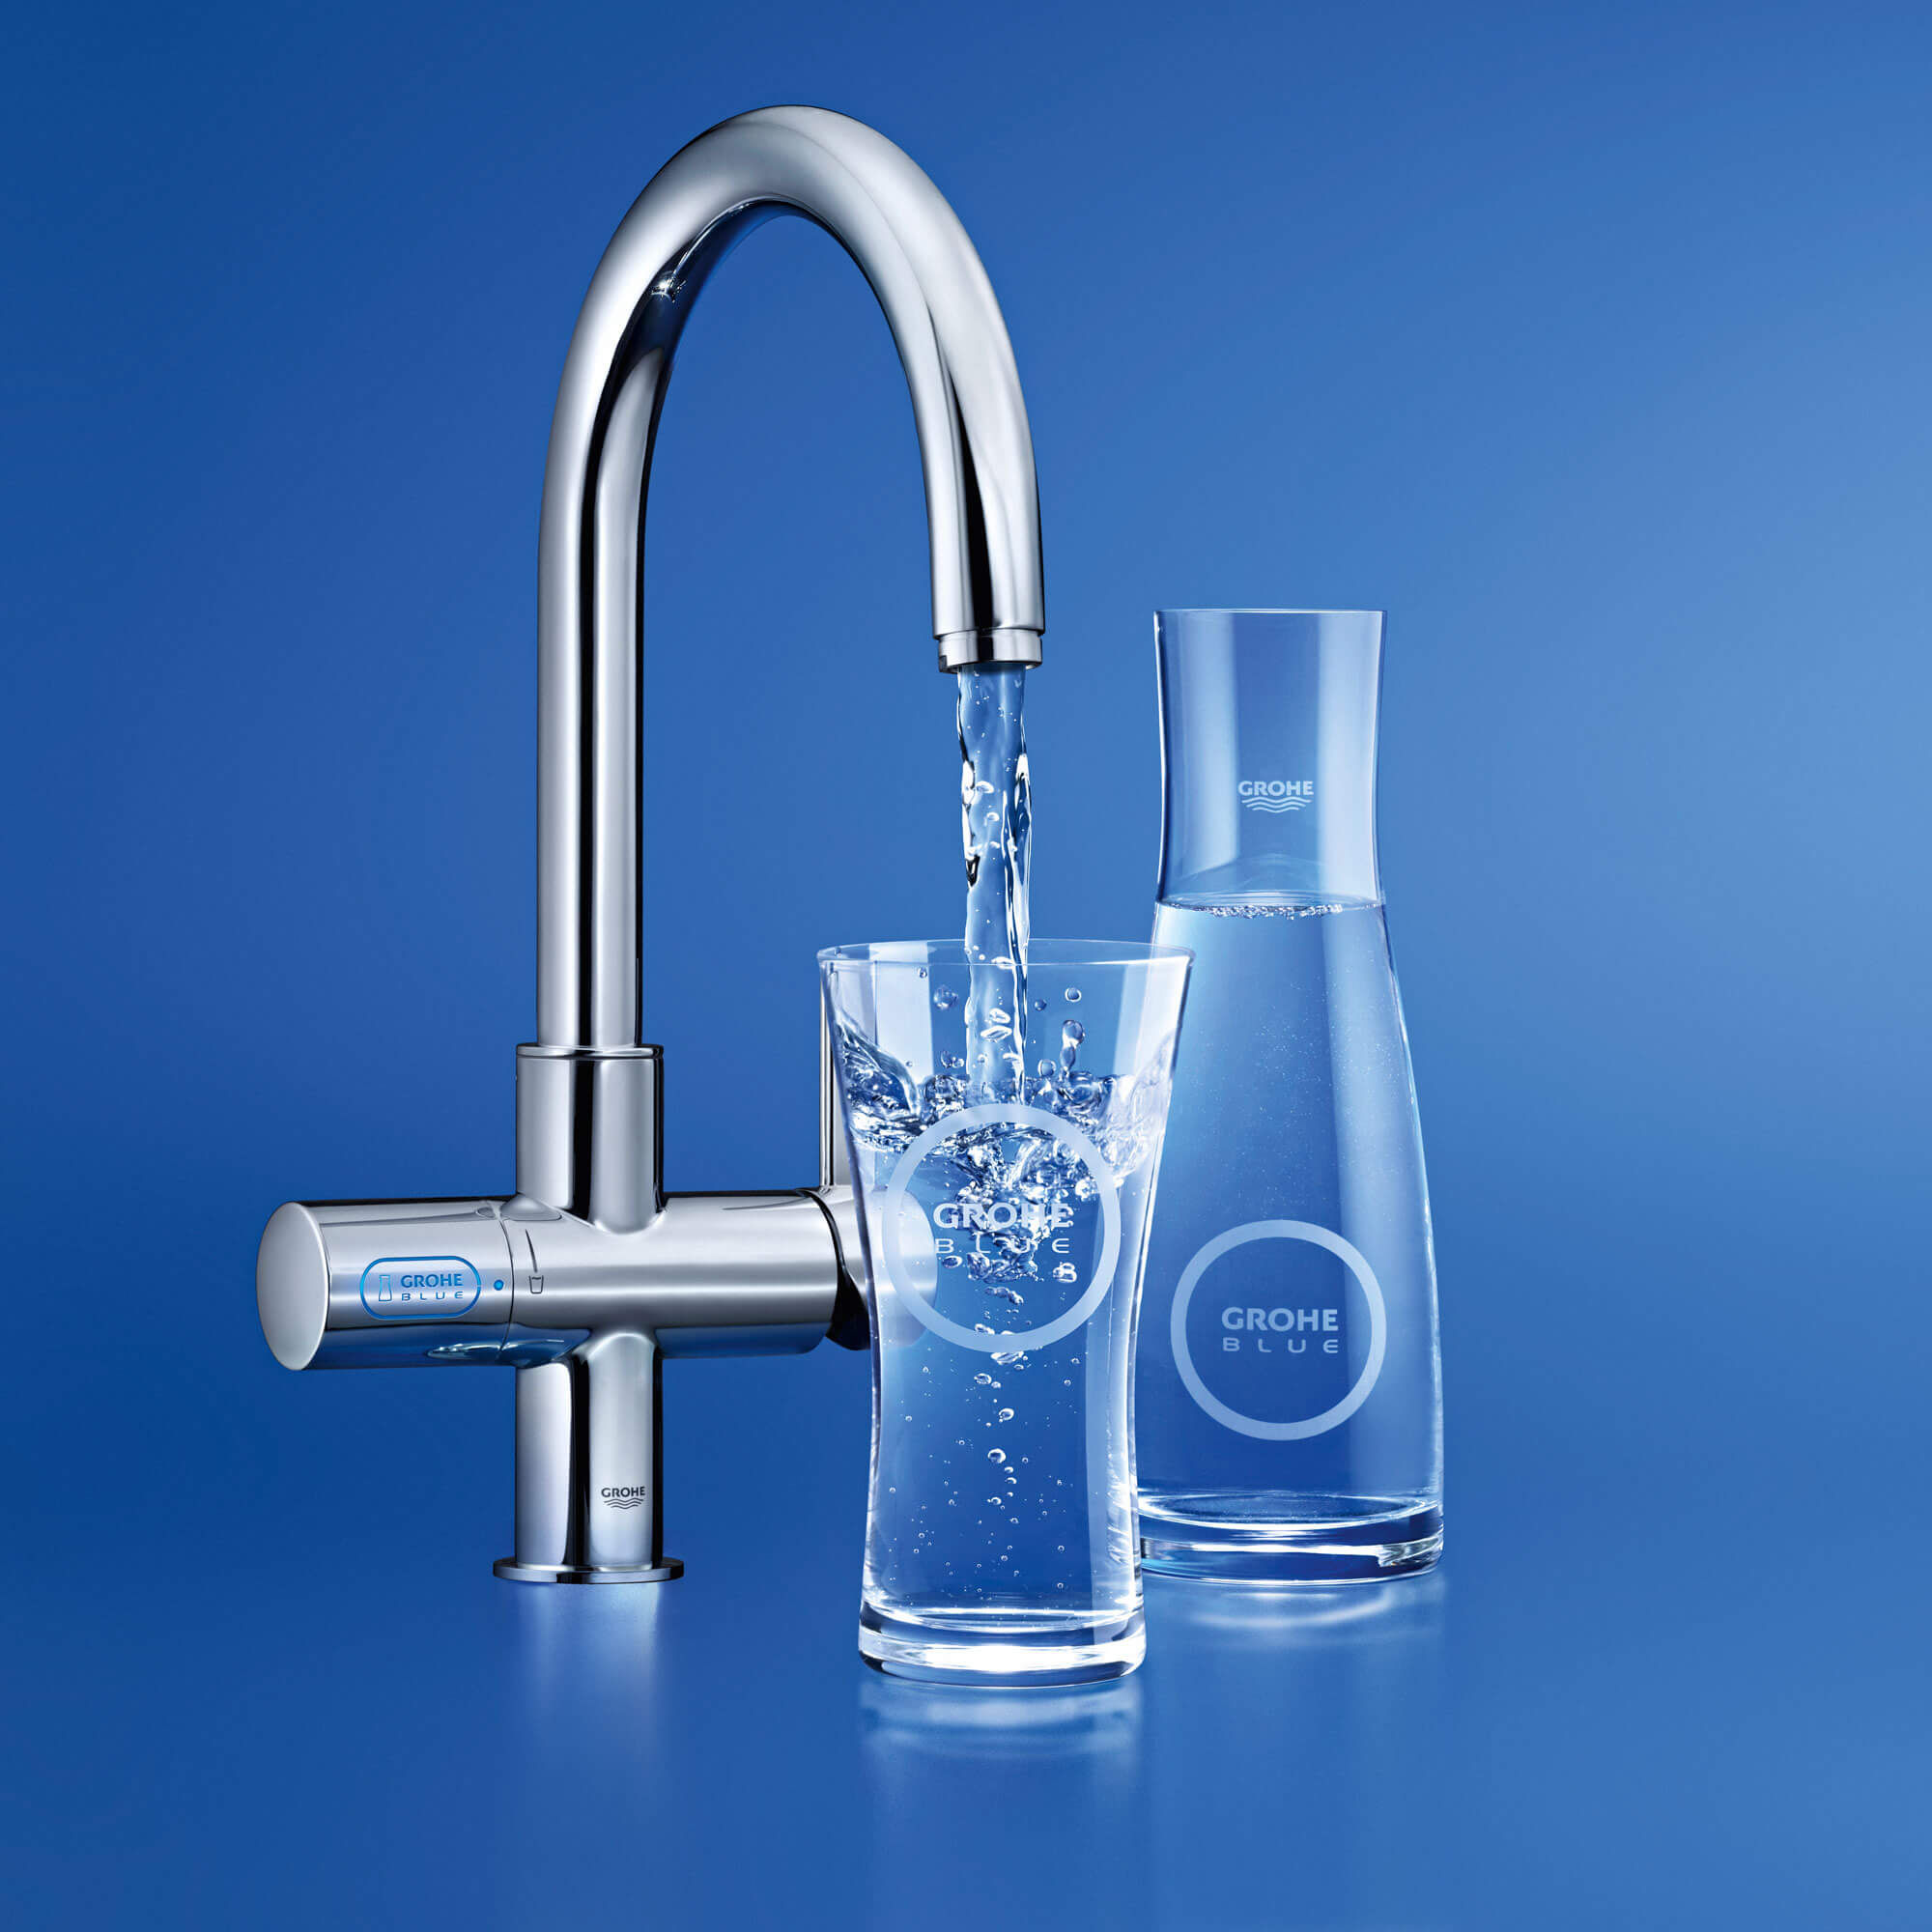 GROHE Blue pouring into a glass